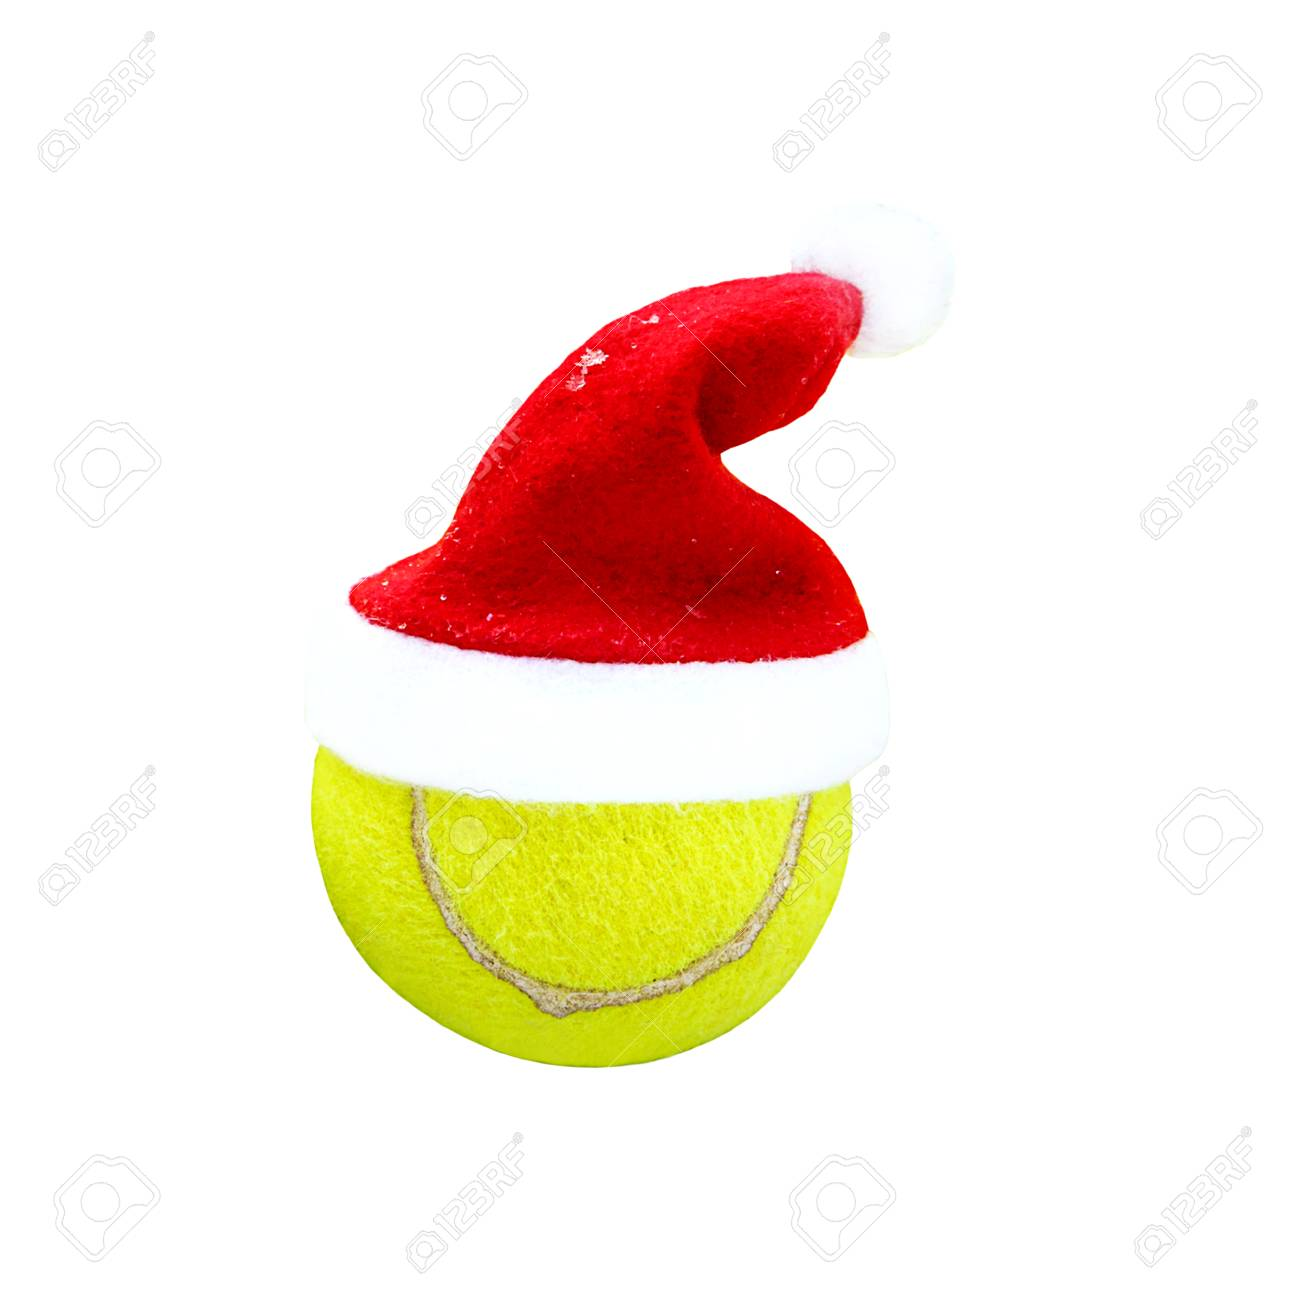 Christmas Sports Background.Santa Hat On Tennis Ball On White Background Merry Christmas